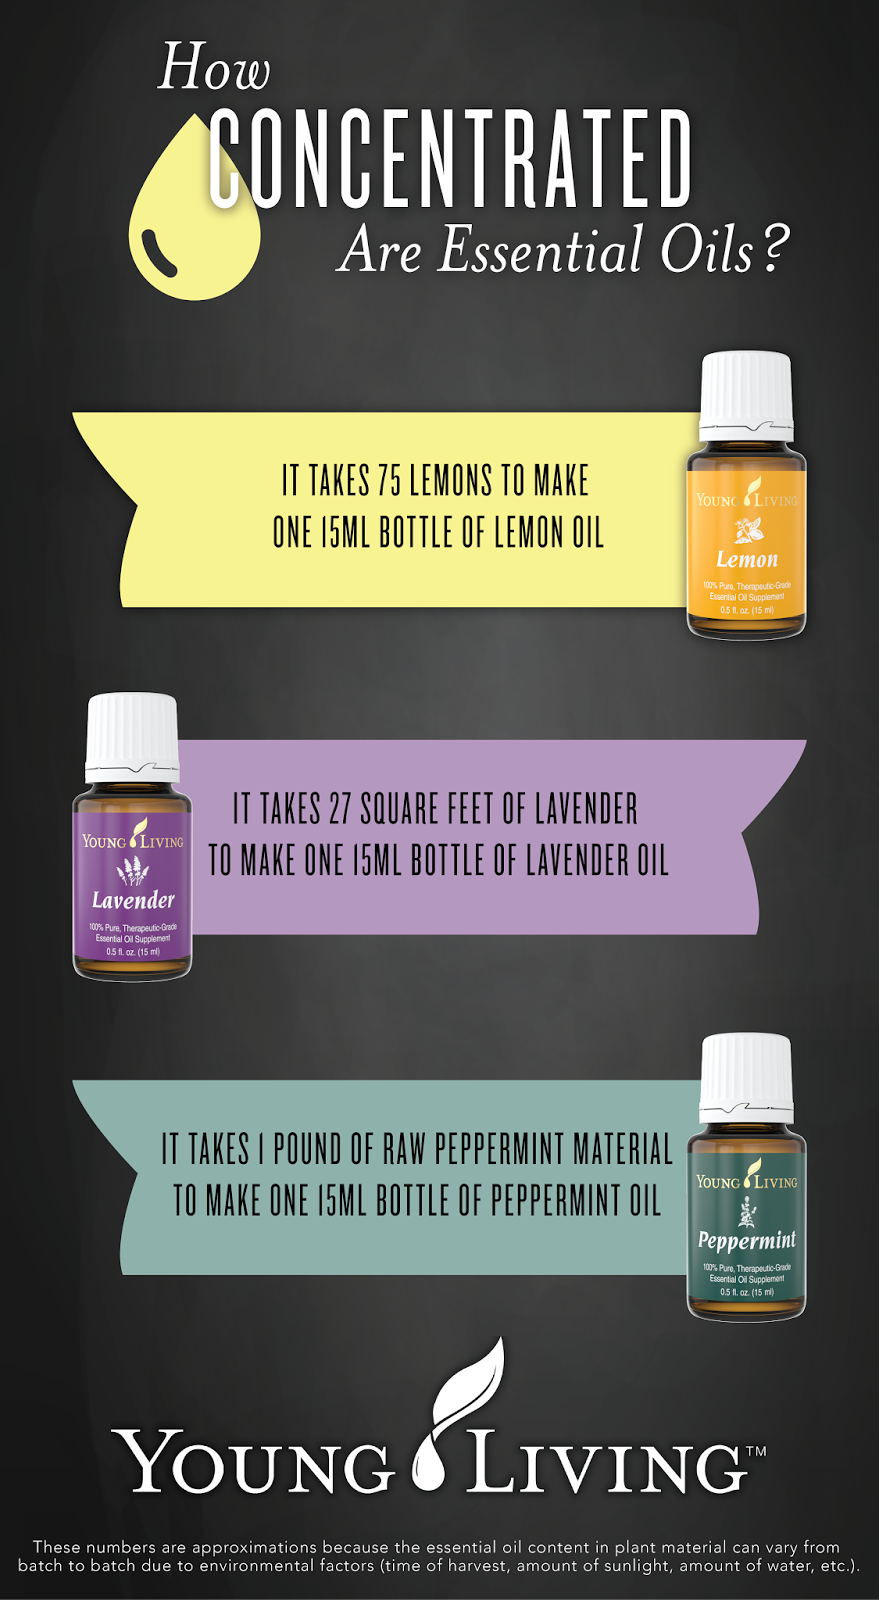 How Concentrated Are Essential Oils?